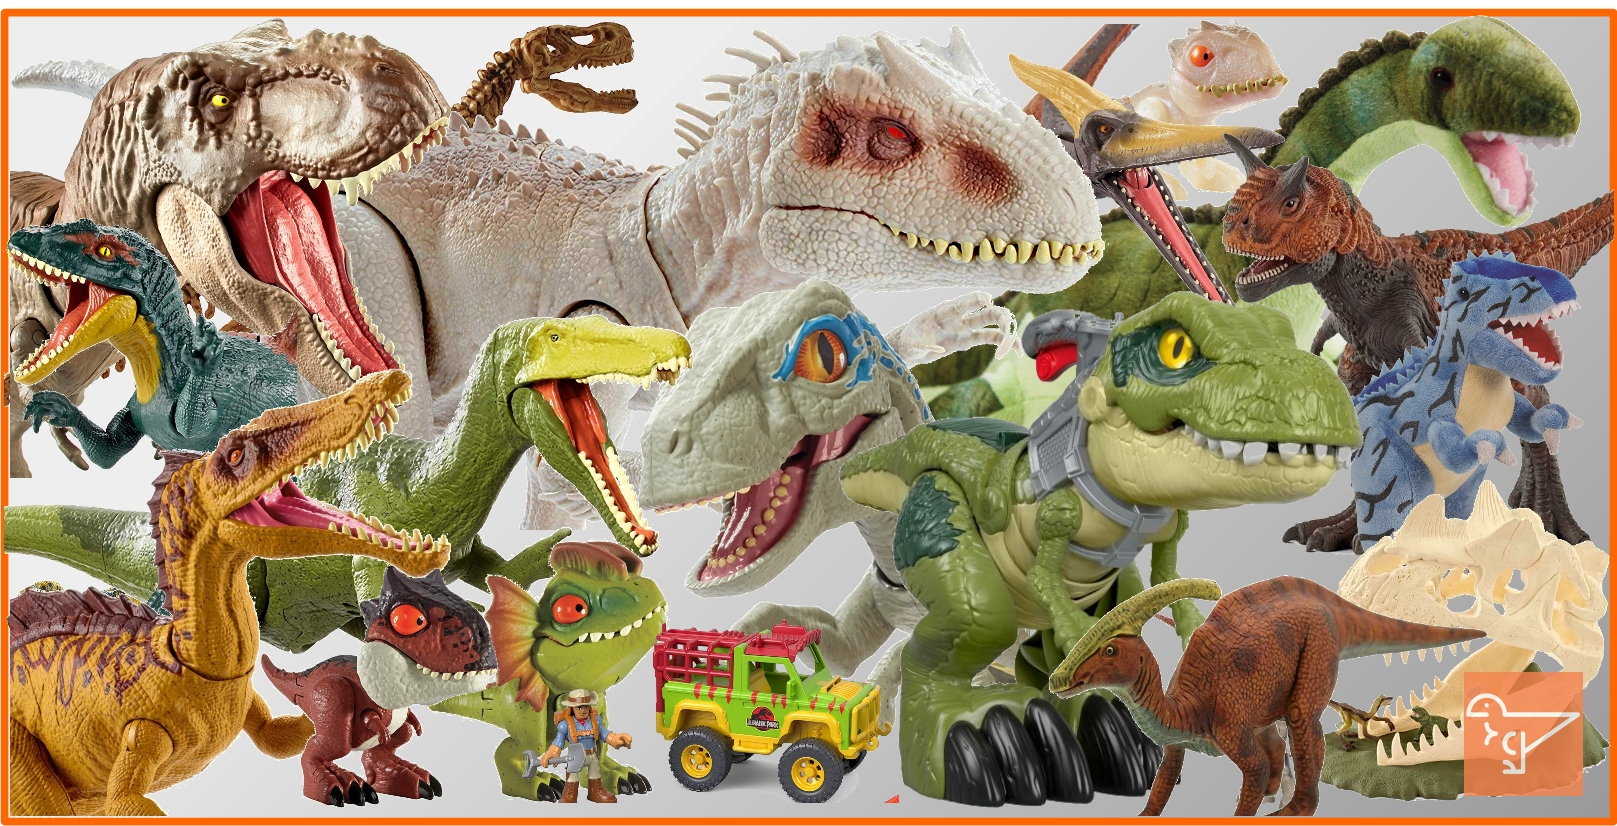 Welcome To Jurassic Toys - Your Next Adventure Awaits….